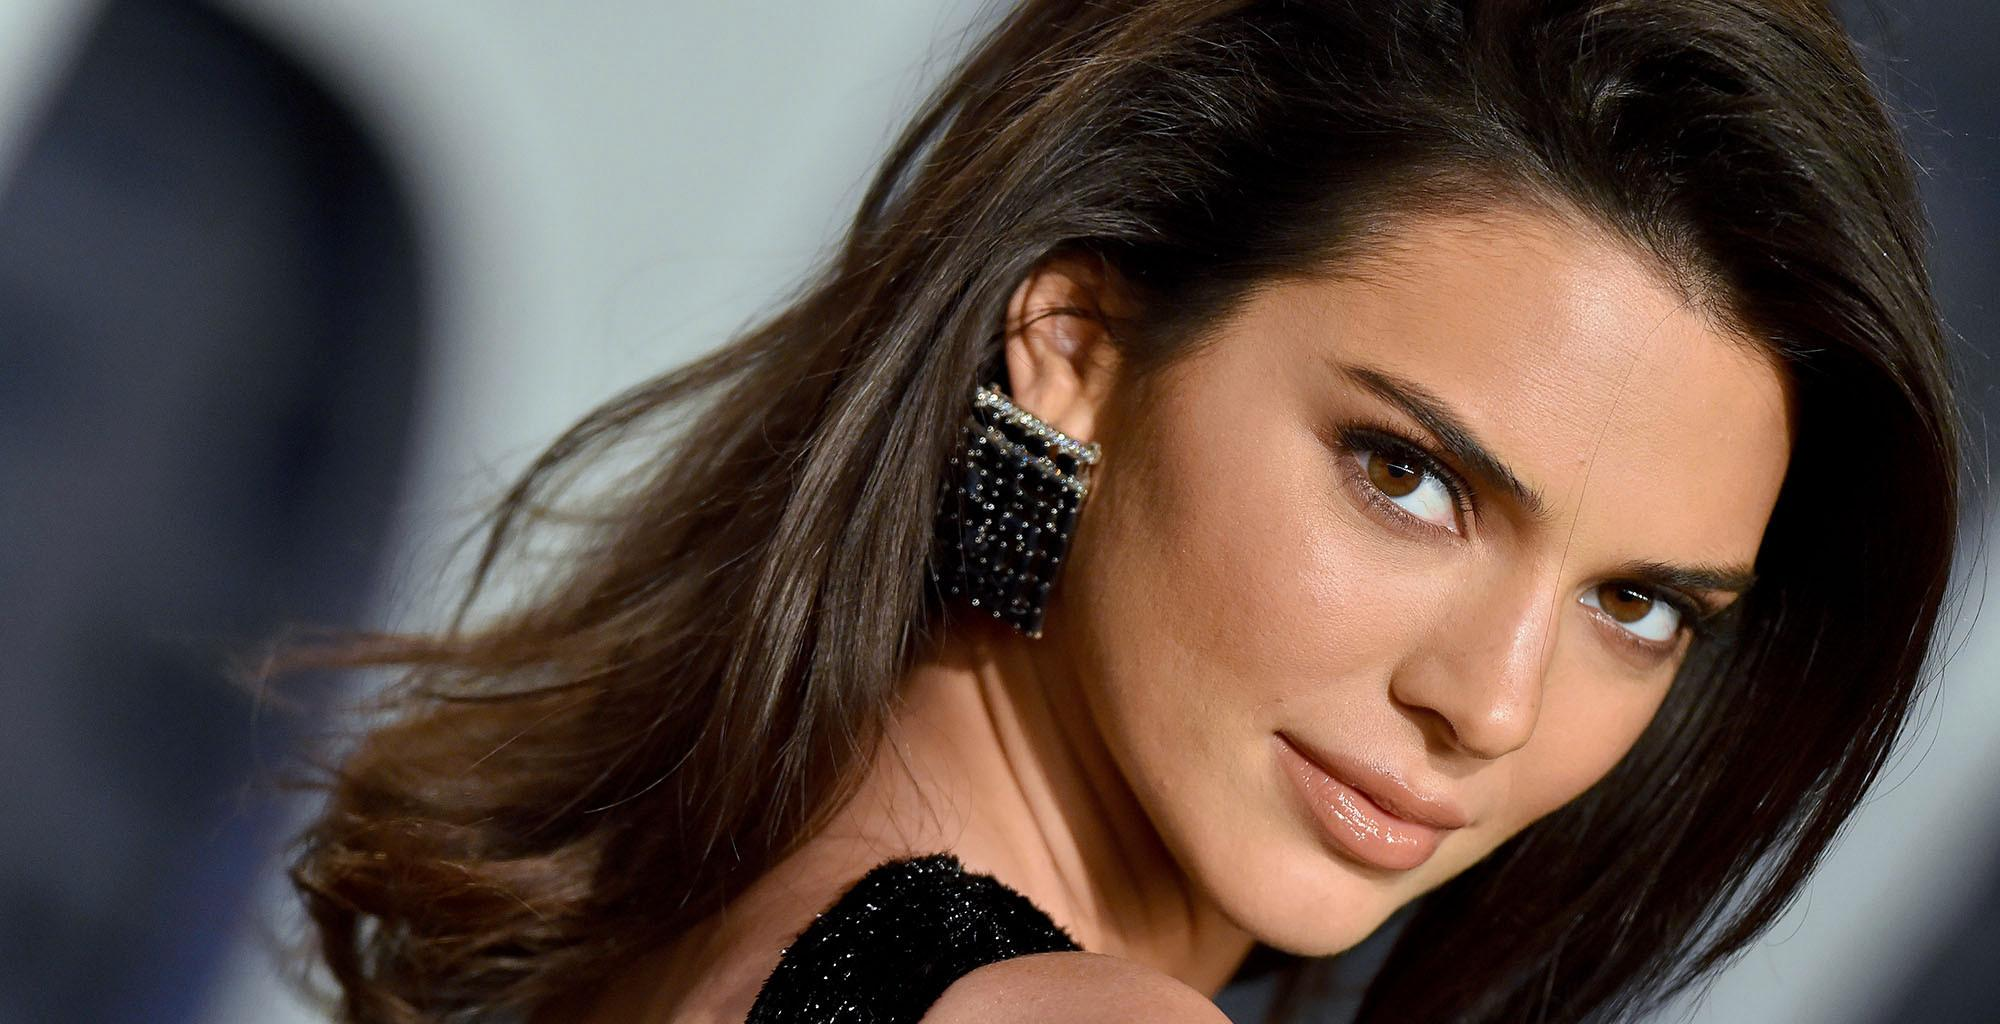 KUWK: Kendall Jenner Gets Candid About Experiencing 'Panic Attacks' Amid The Quarantine